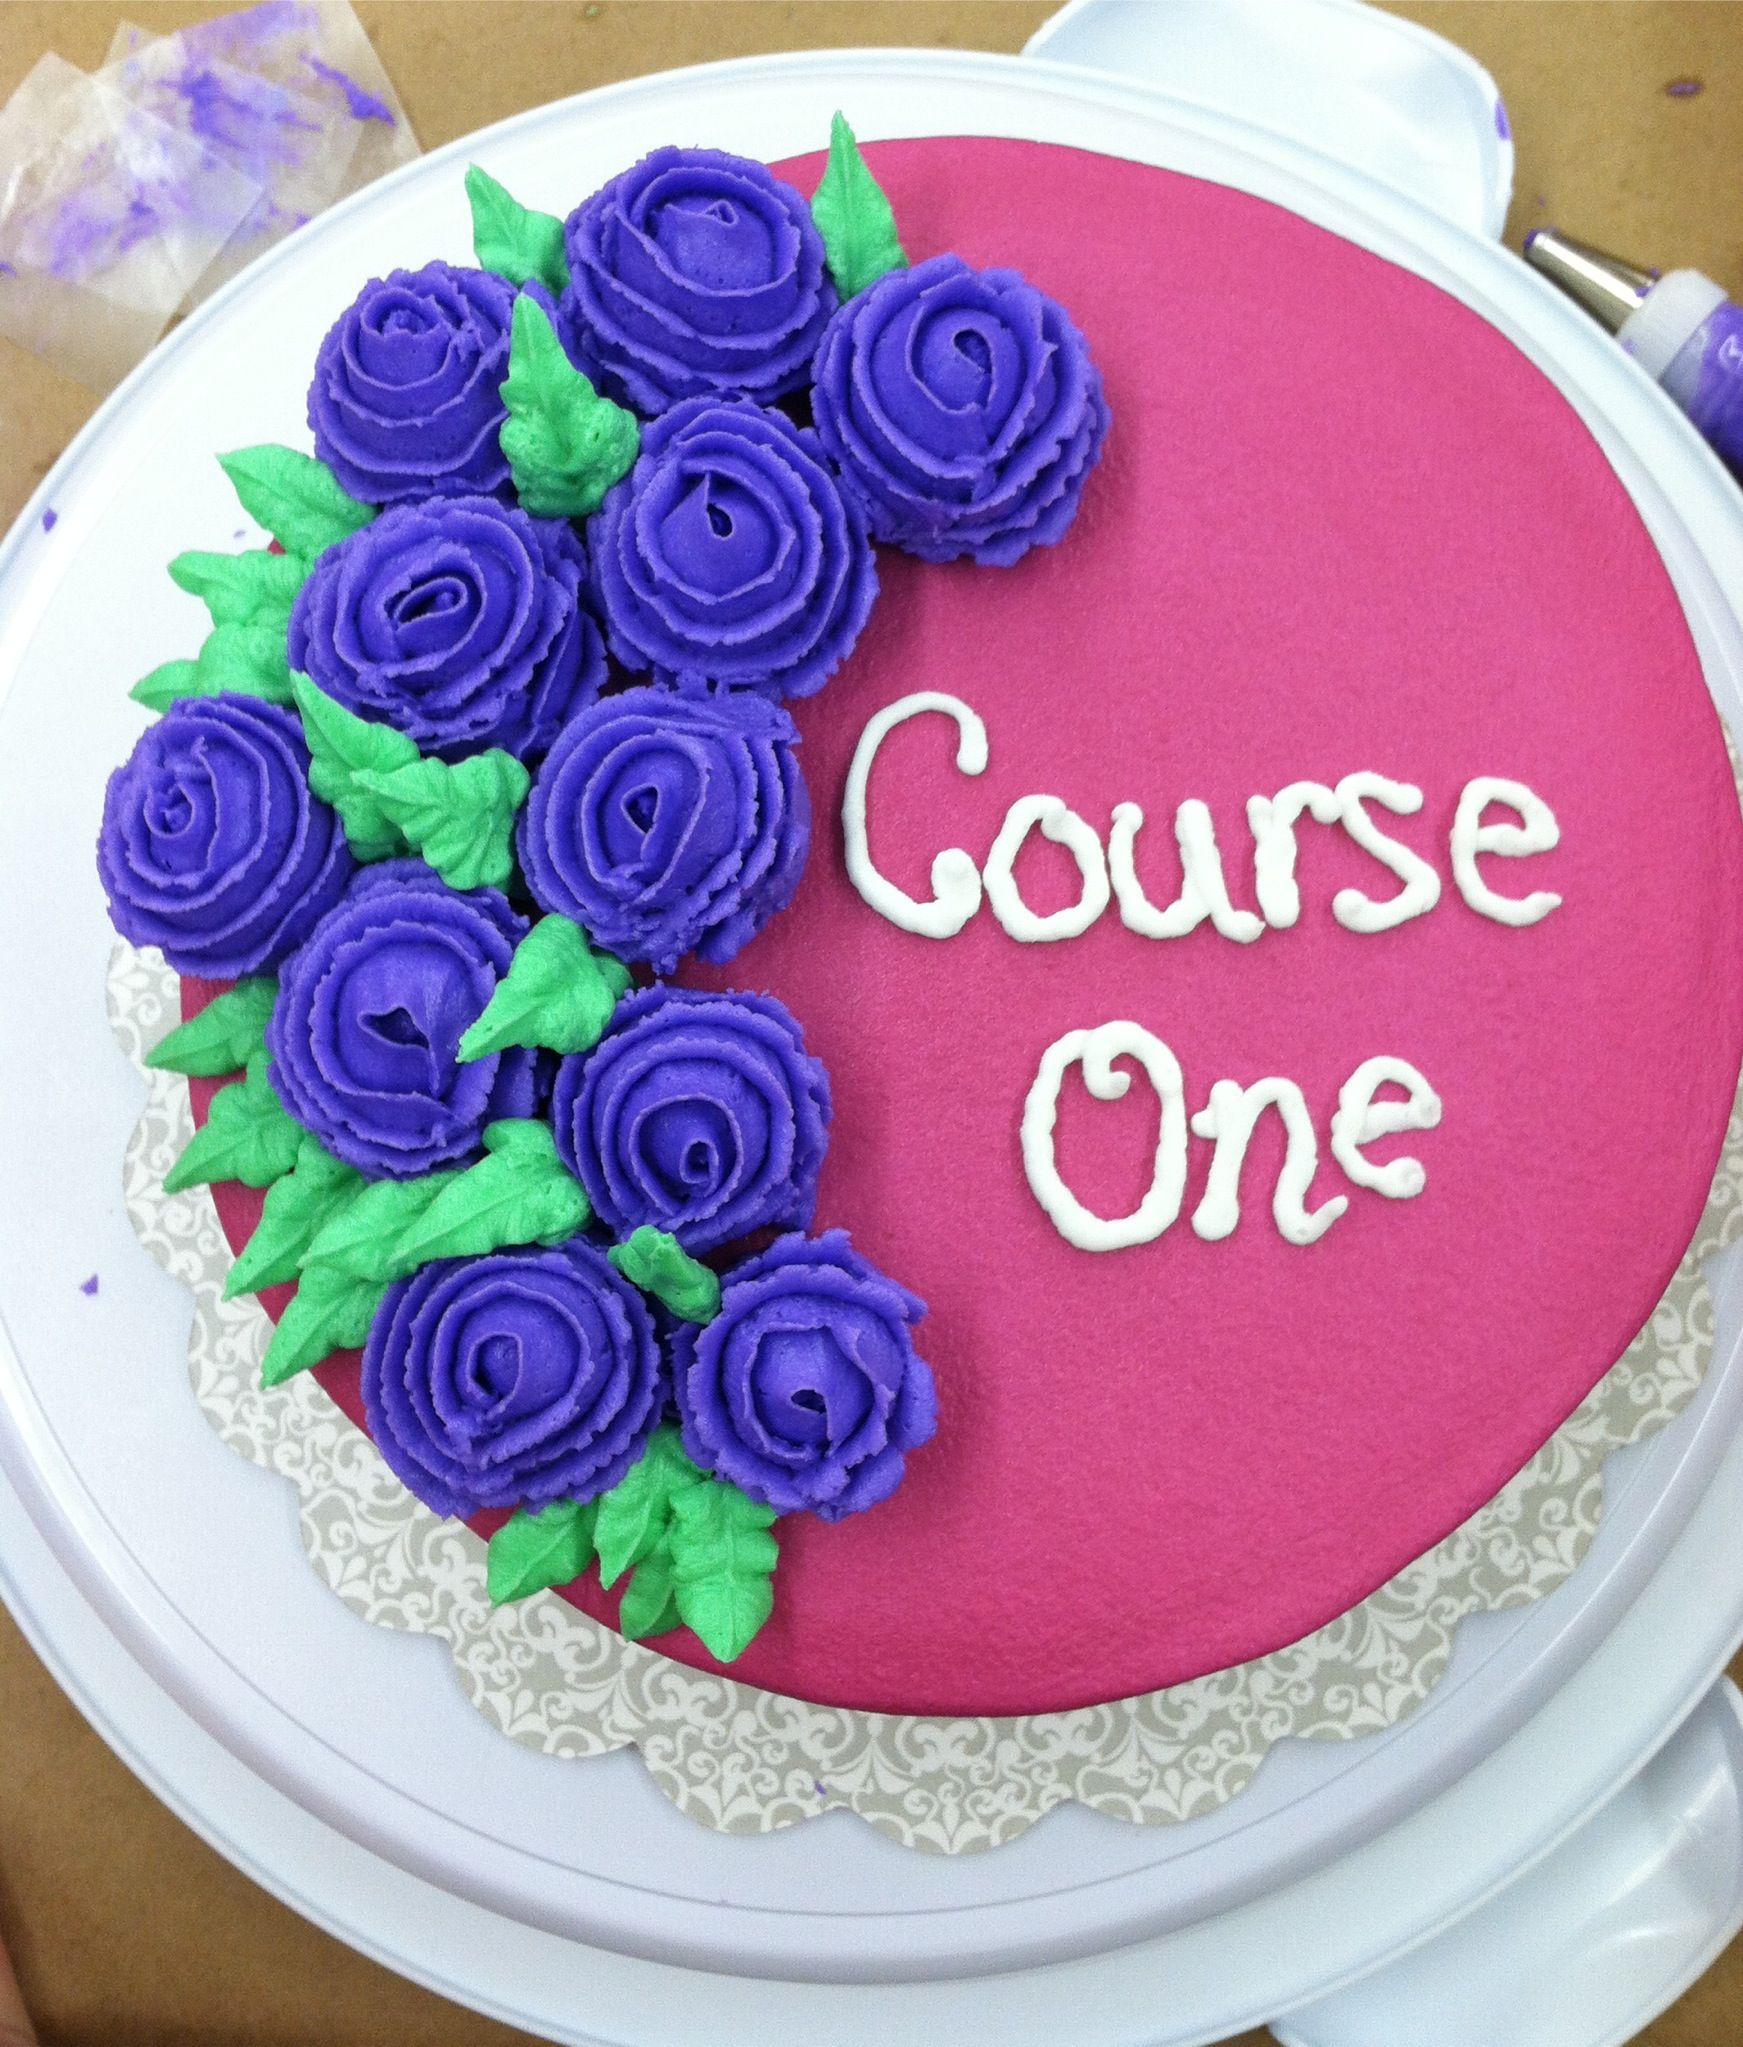 Final Cake In Course 1 At Michaels Chelmsford Ma 10 2 12 Wiltoncontest Cake Cake Decorating Classes Cake Decorating